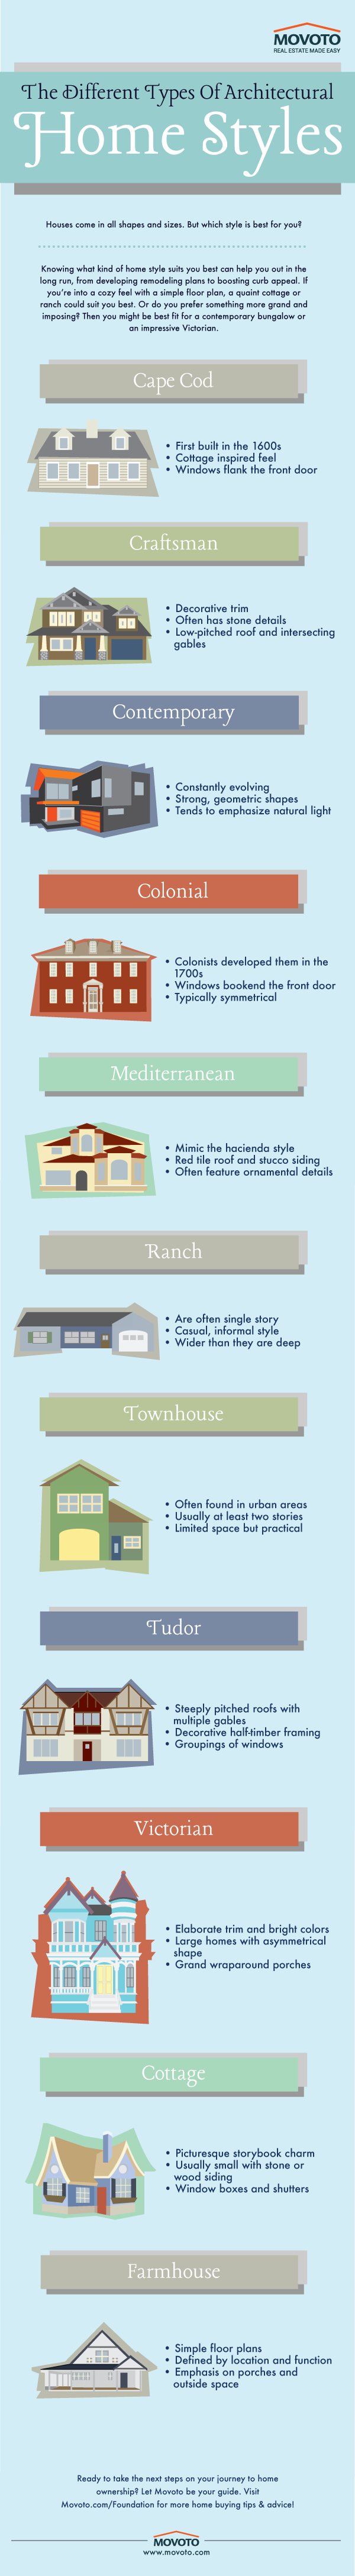 Home Styles Infographic